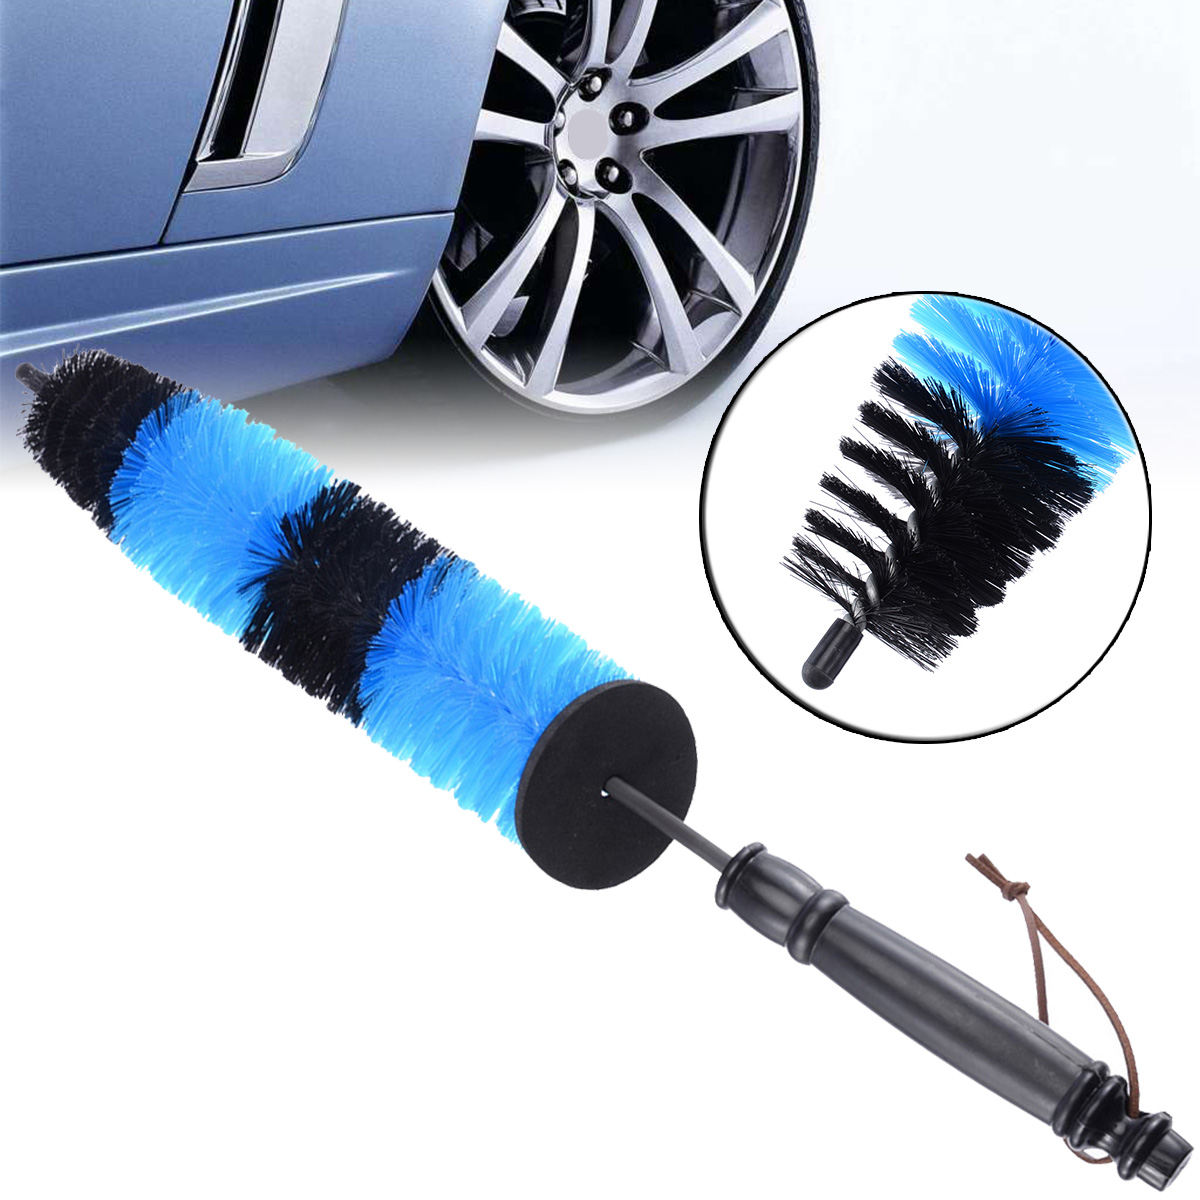 1pcs Multifunction Wheel Wash Brush Car Truck Motor Engine Grille Wheel Wash Brush Tire Rim Cleaning Tool Blue